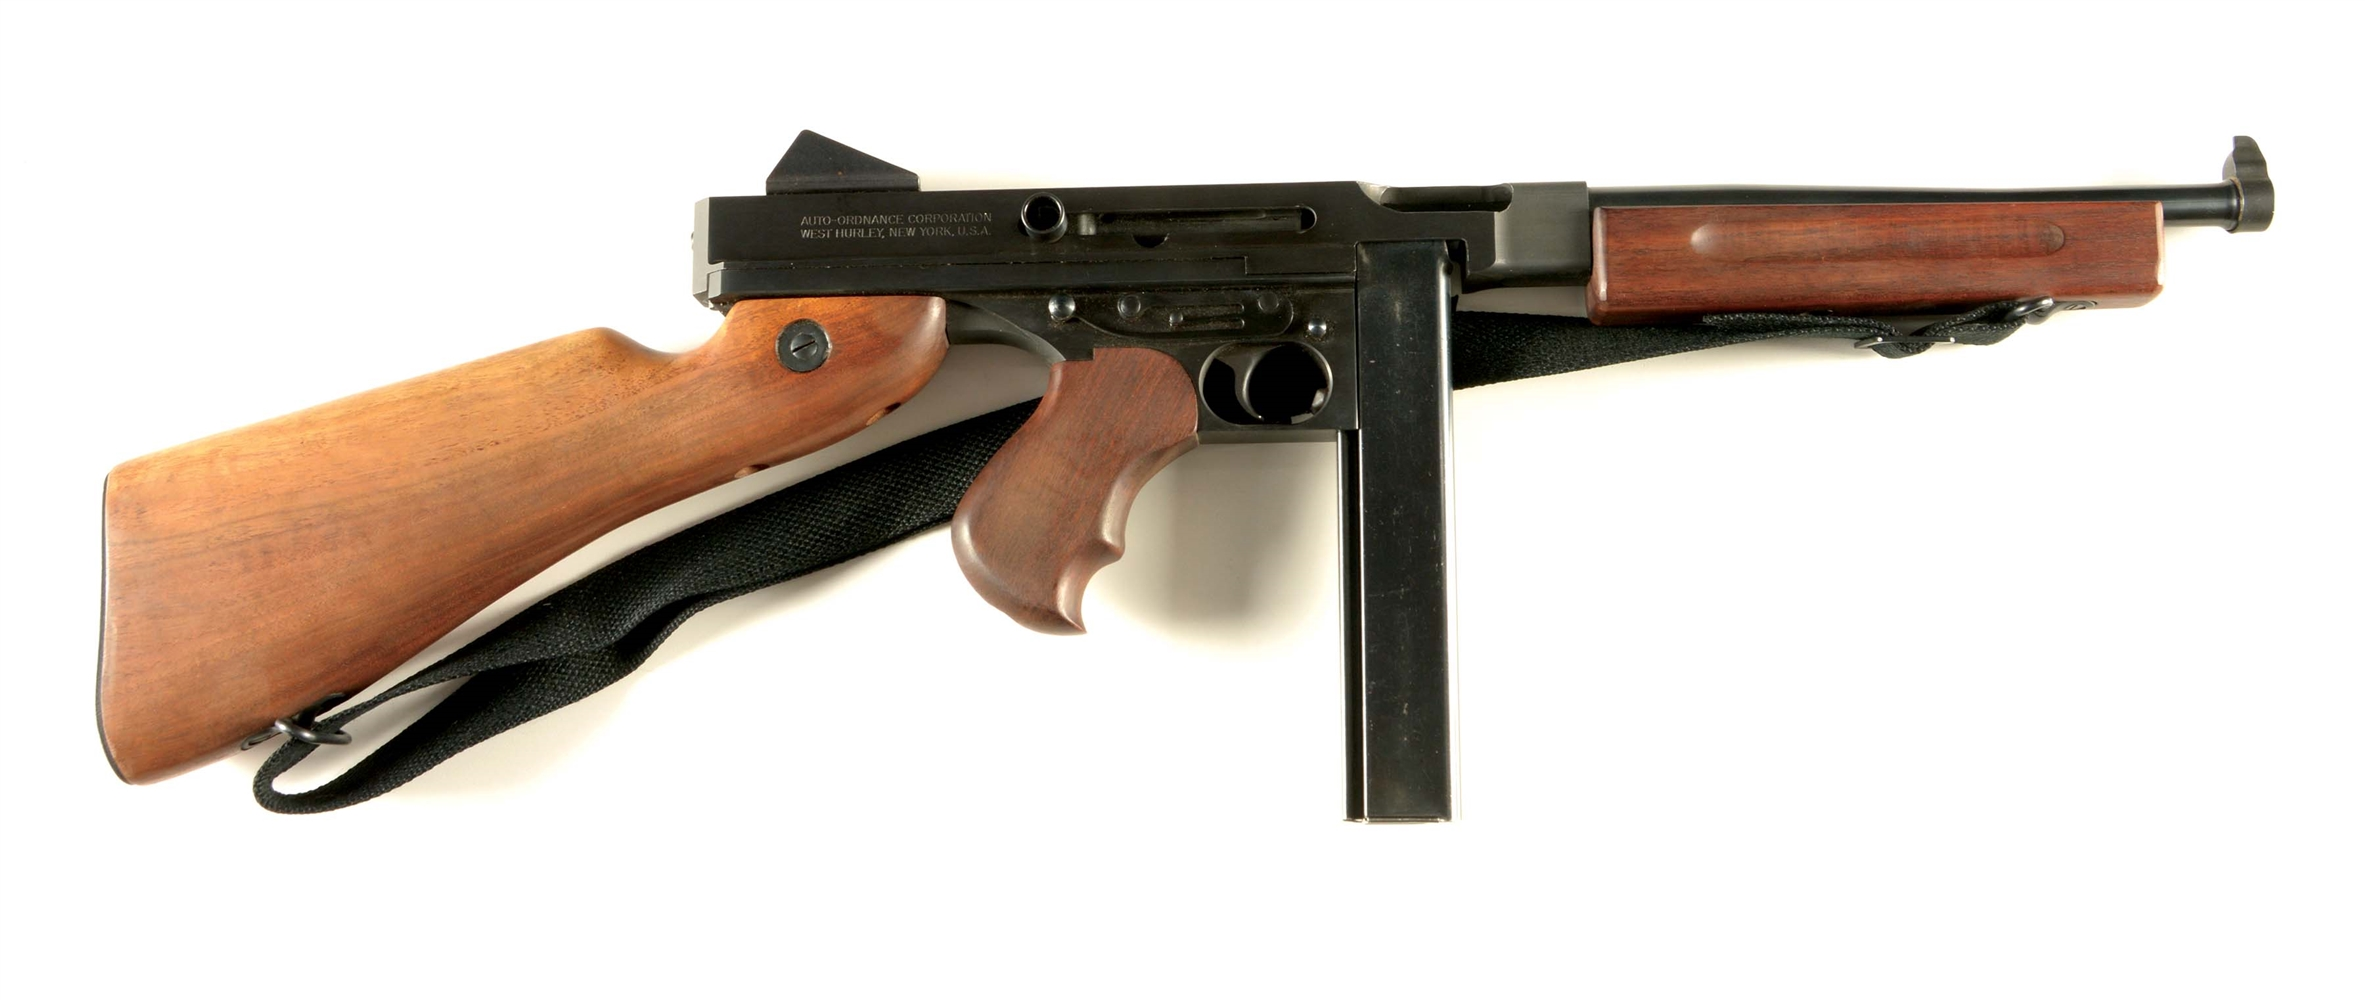 (N) FANTASTIC NEAR MINT AUTO ORDNANCE WEST HURLEY THOMPSON MACHINE GUN IN M1A1 CONFIGURATION (CURIO AND RELIC).